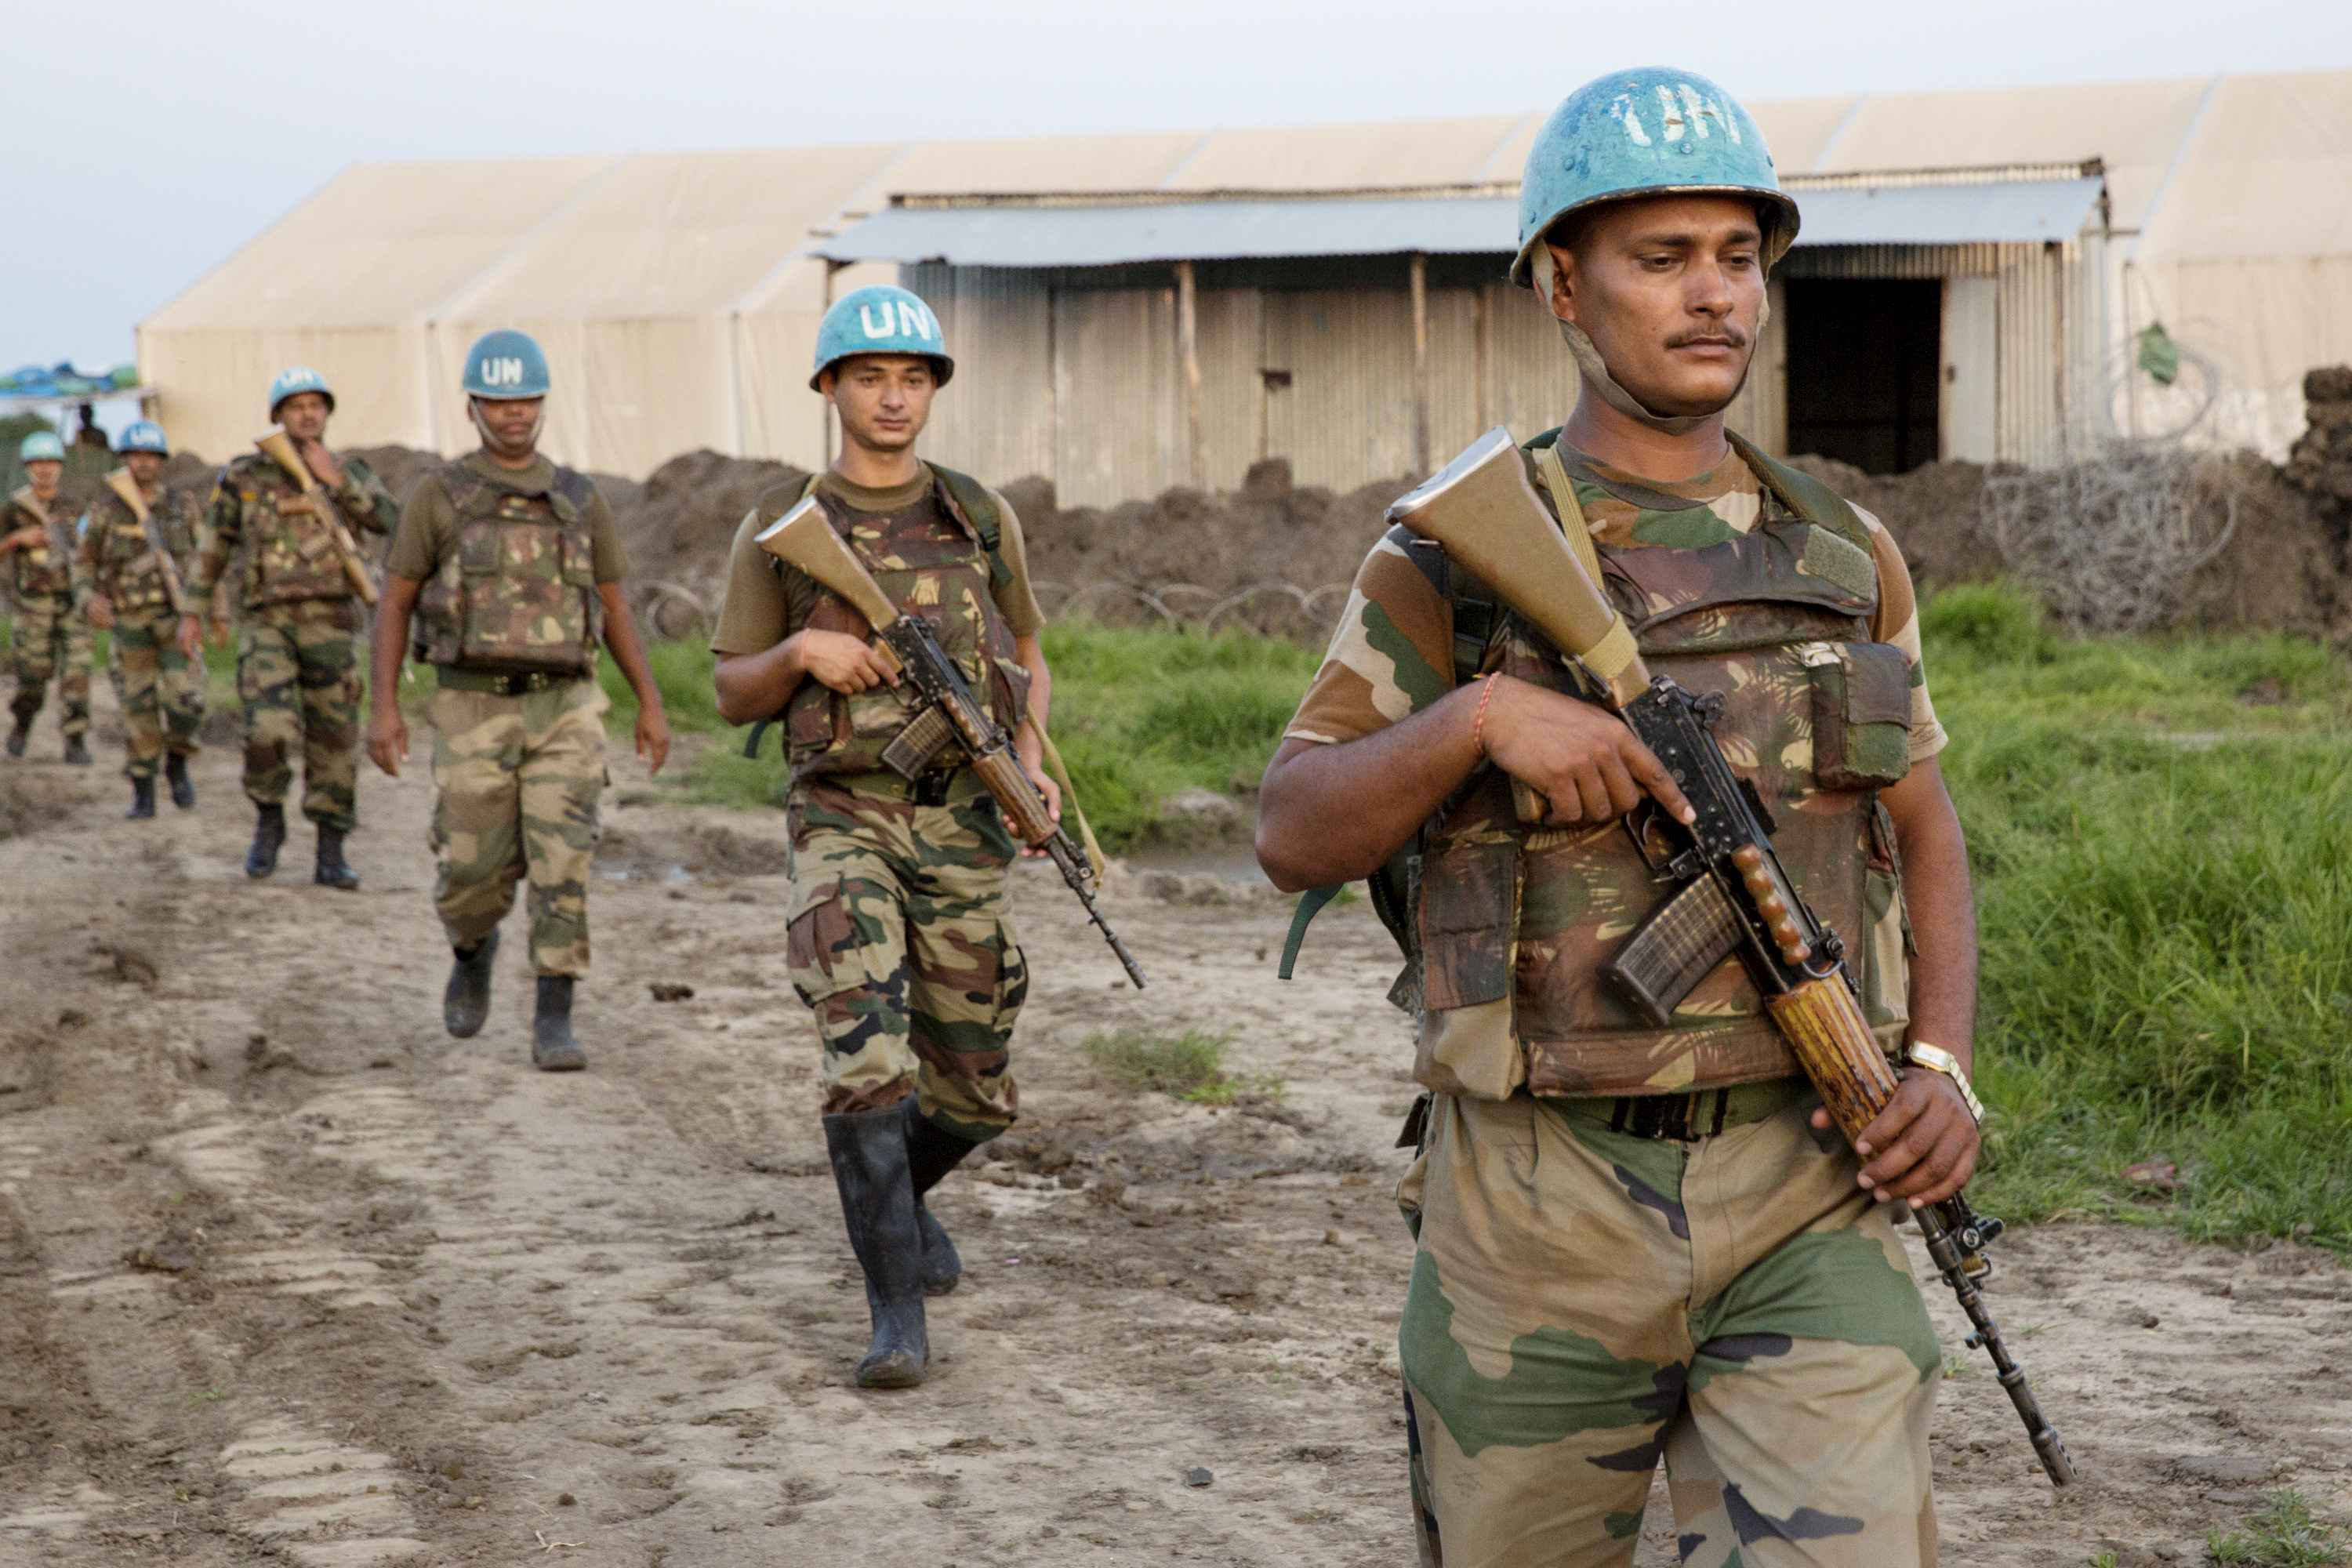 Indian peacekeepers take robust measures to protect South Sudan refugees